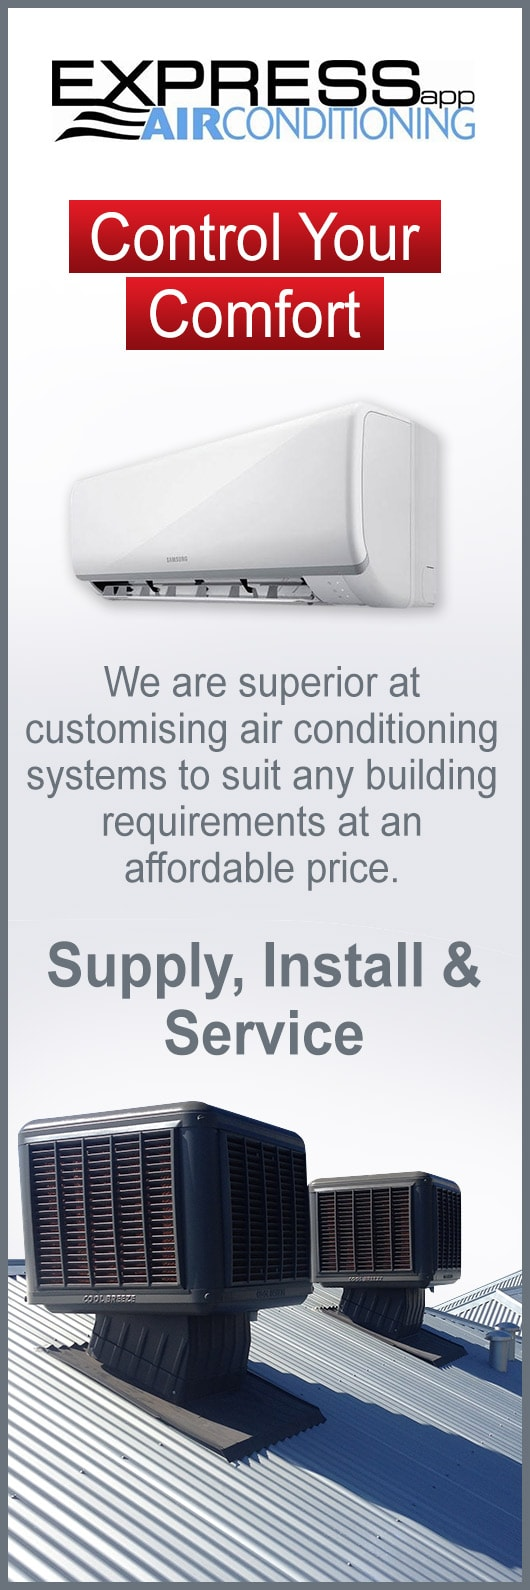 expressapp airconditioning - air conditioning installation & service